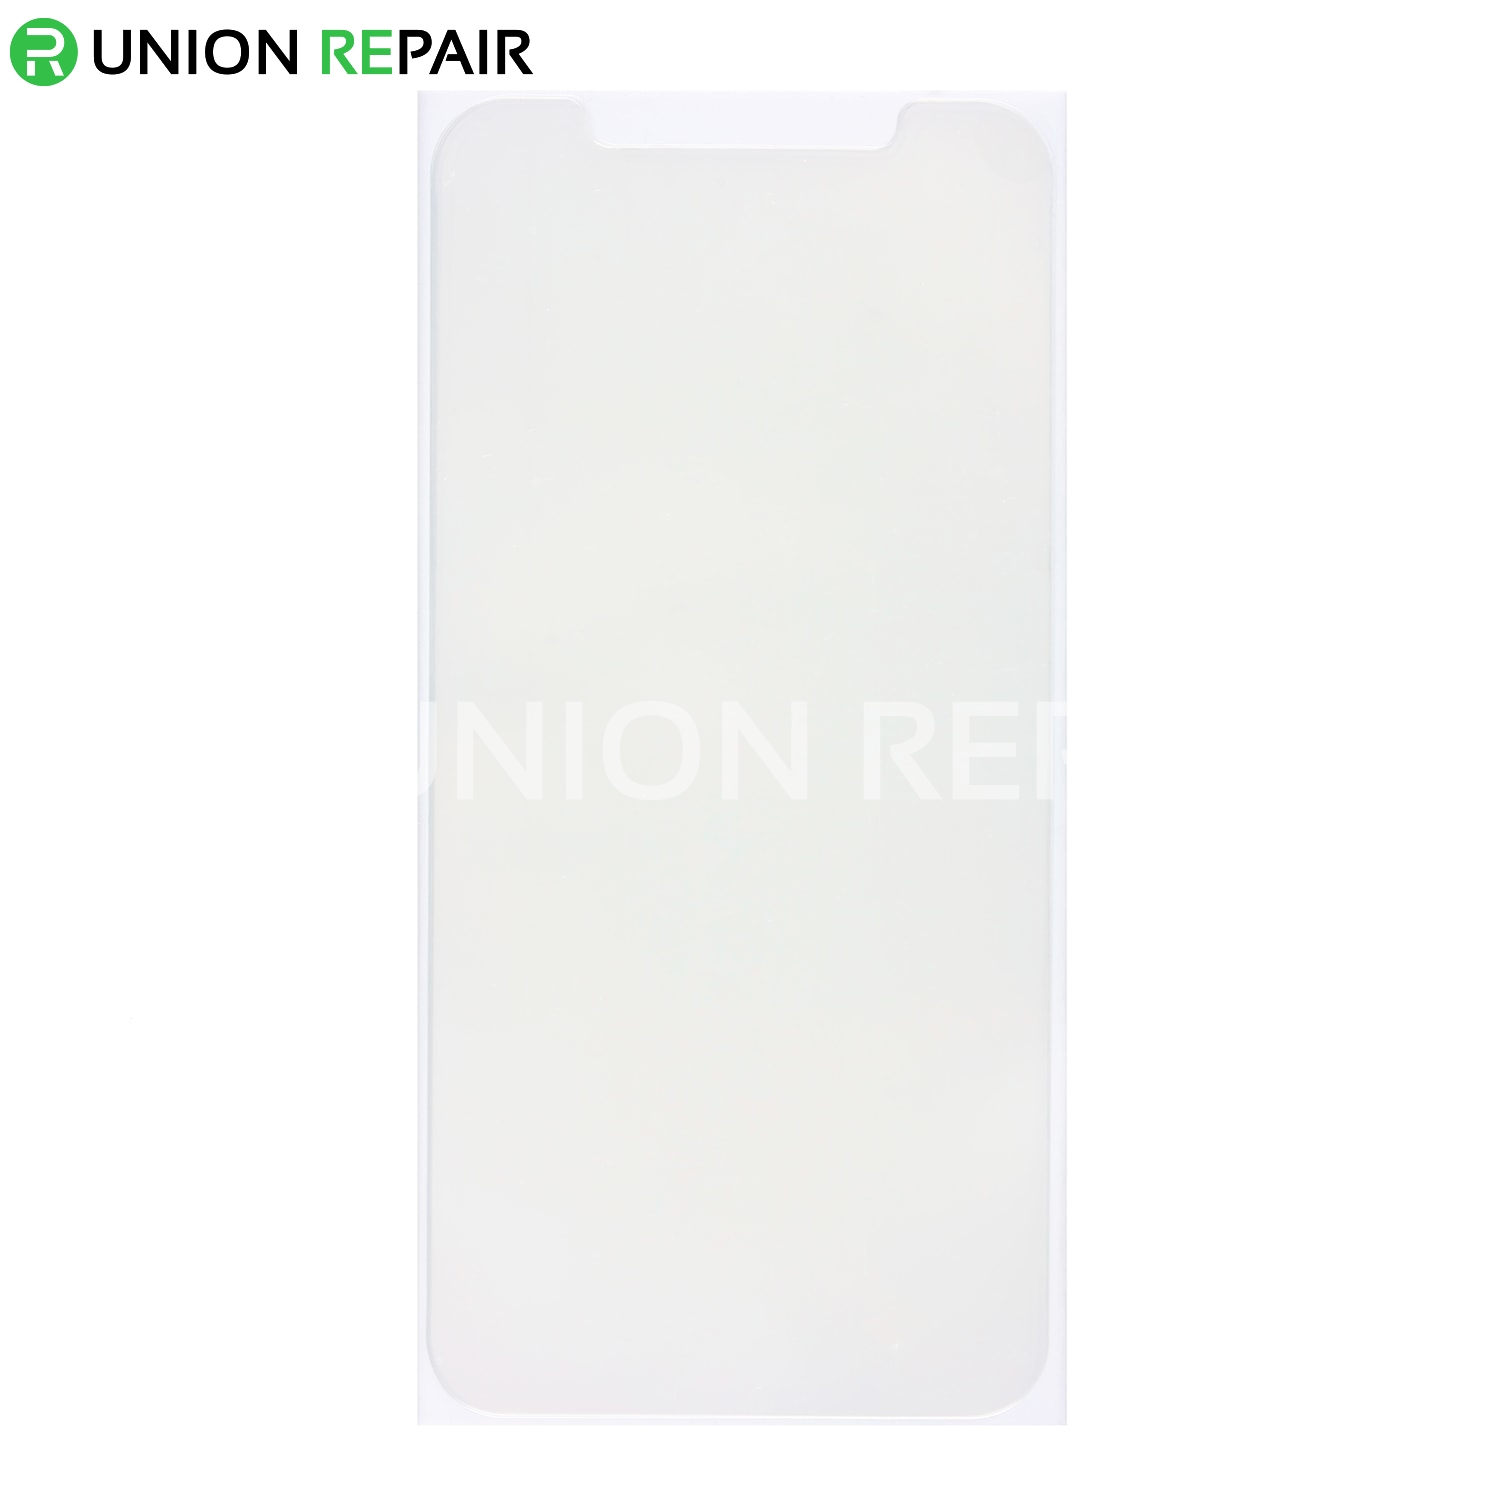 1pcs OCA Optical Clear Adhesive Double-side Sticker for iPhone X/Xs